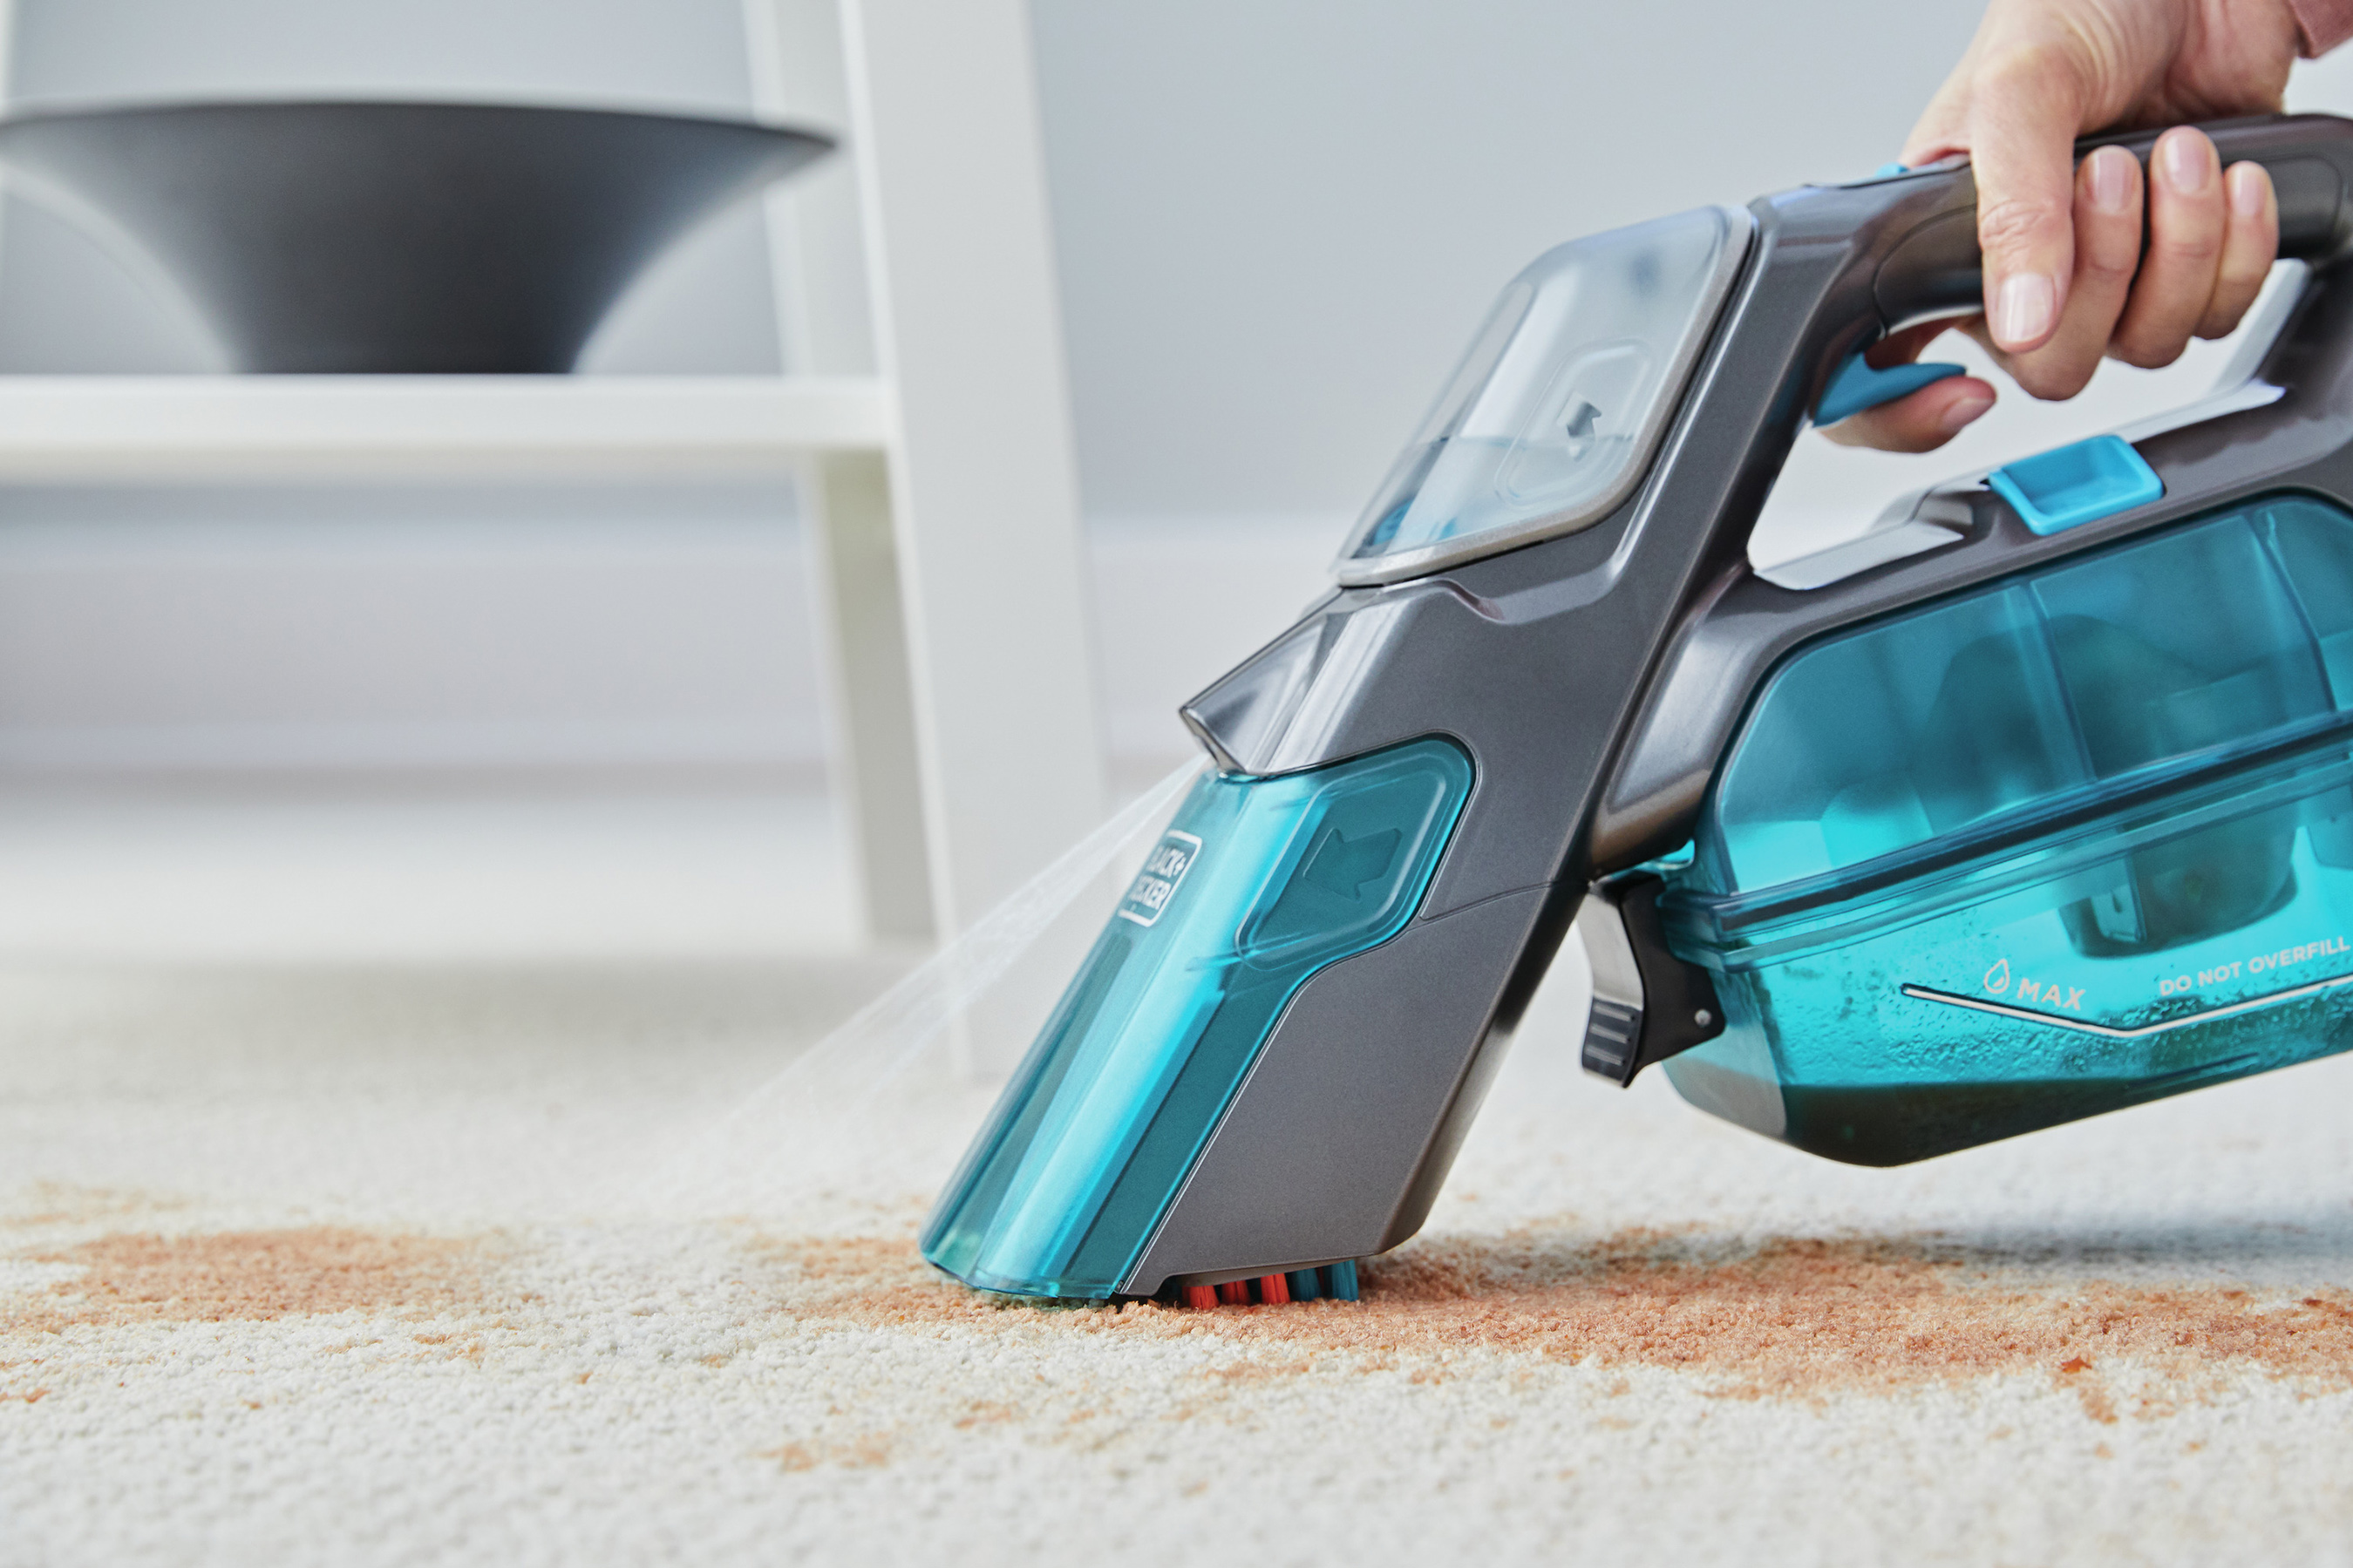 Introducing the spillbustertm Cordless Spill + Spot Cleaner